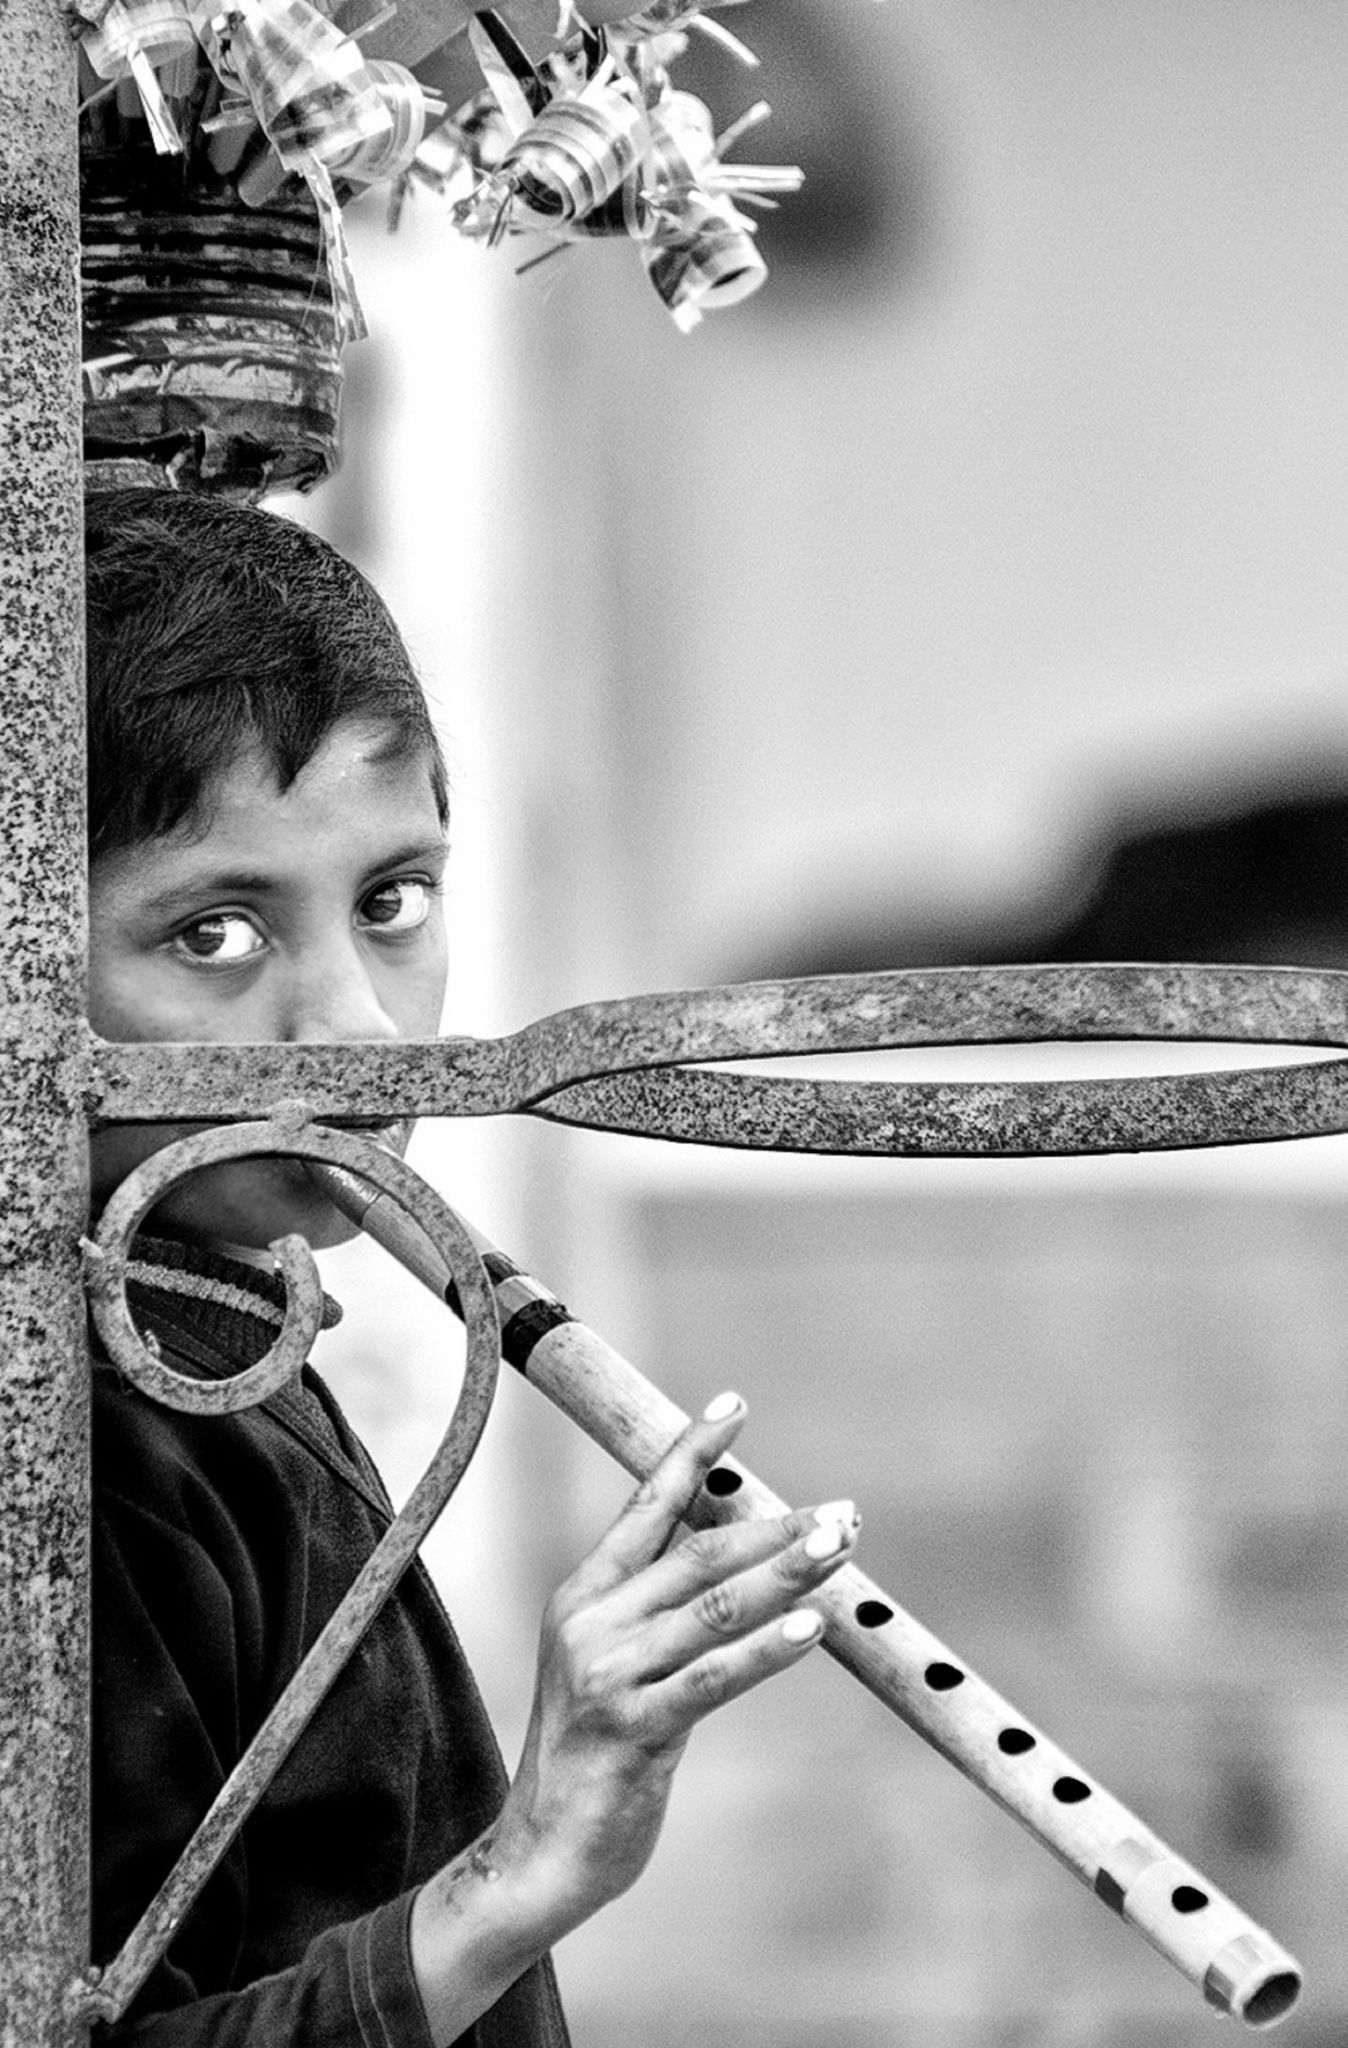 The Flute Seller by Anirban Chaklader Frames